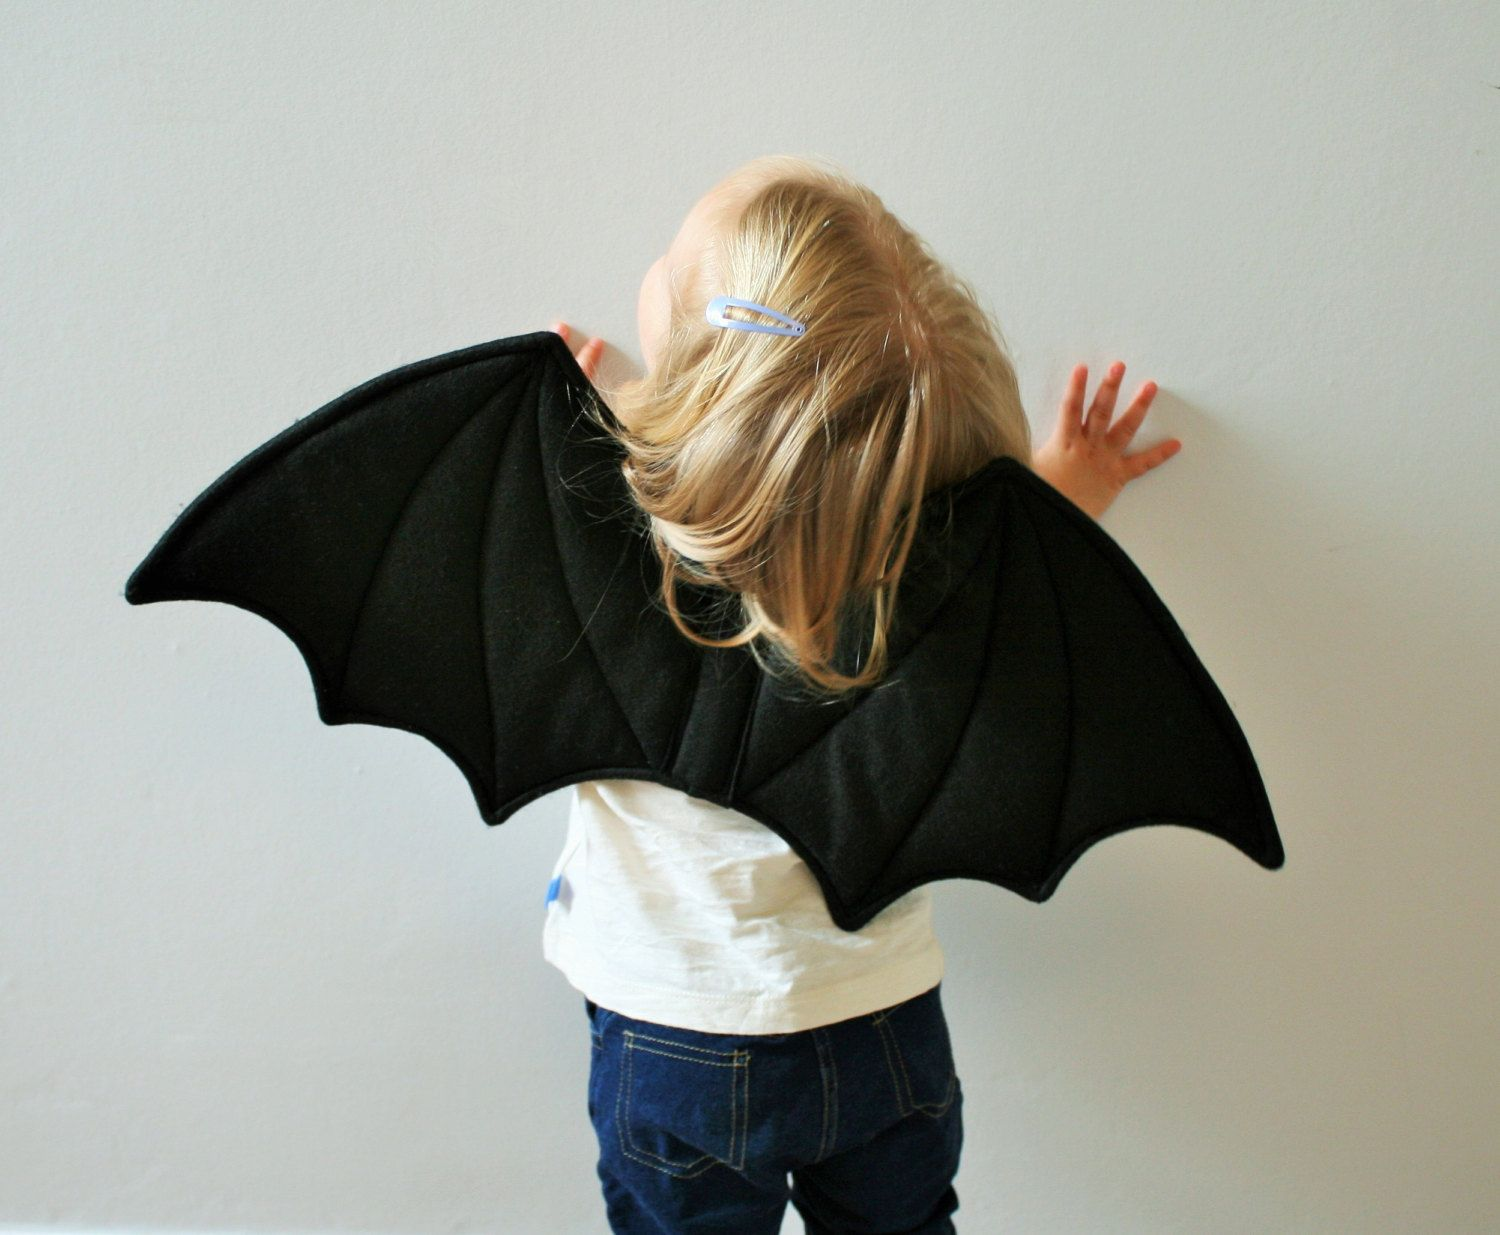 childrens bat wings halloween costume fancy dress costume dressing up black felt quality uk handmade kids toddlers girls boys 2100 gbp by